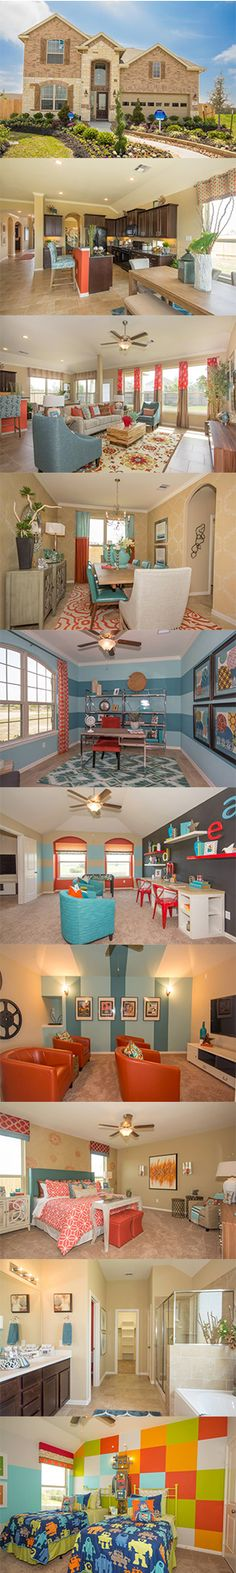 With bright splashes of color and a great use of space (movie night, anyone!?), the Alabaster model may be one of our favorites yet! What do you think?